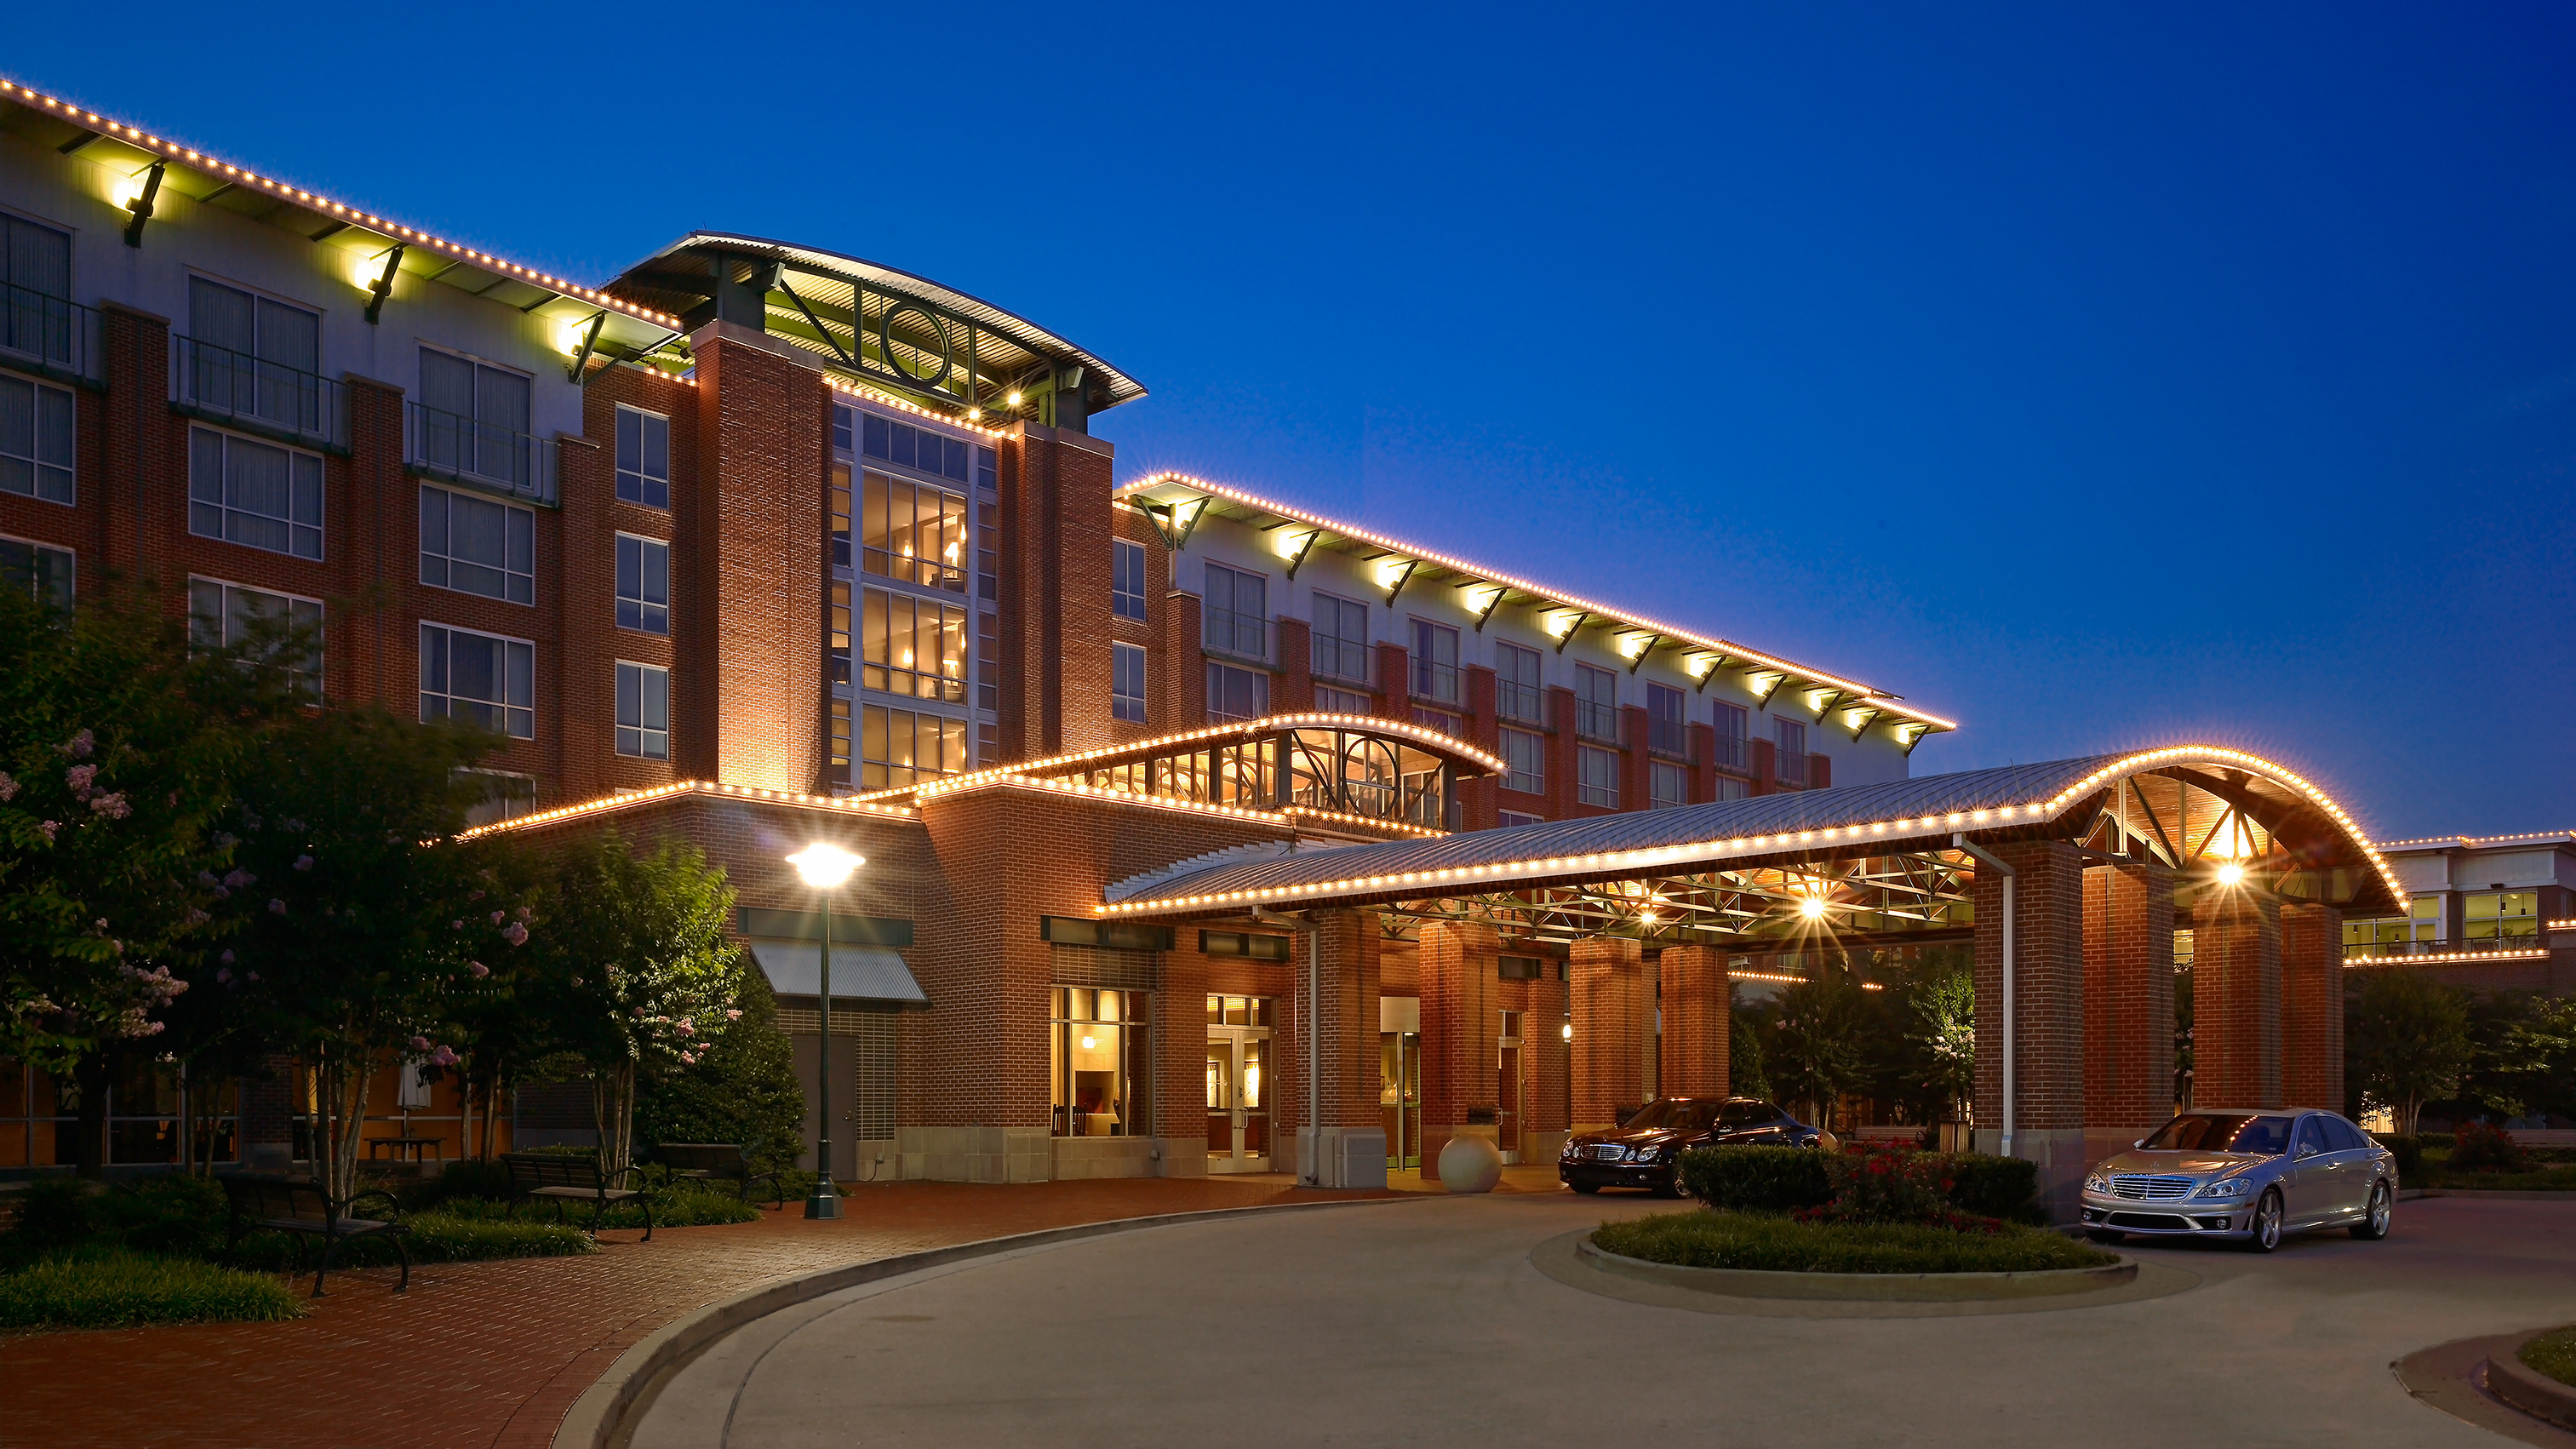 Chattanooga Hotels Where to Stay in Chattanooga